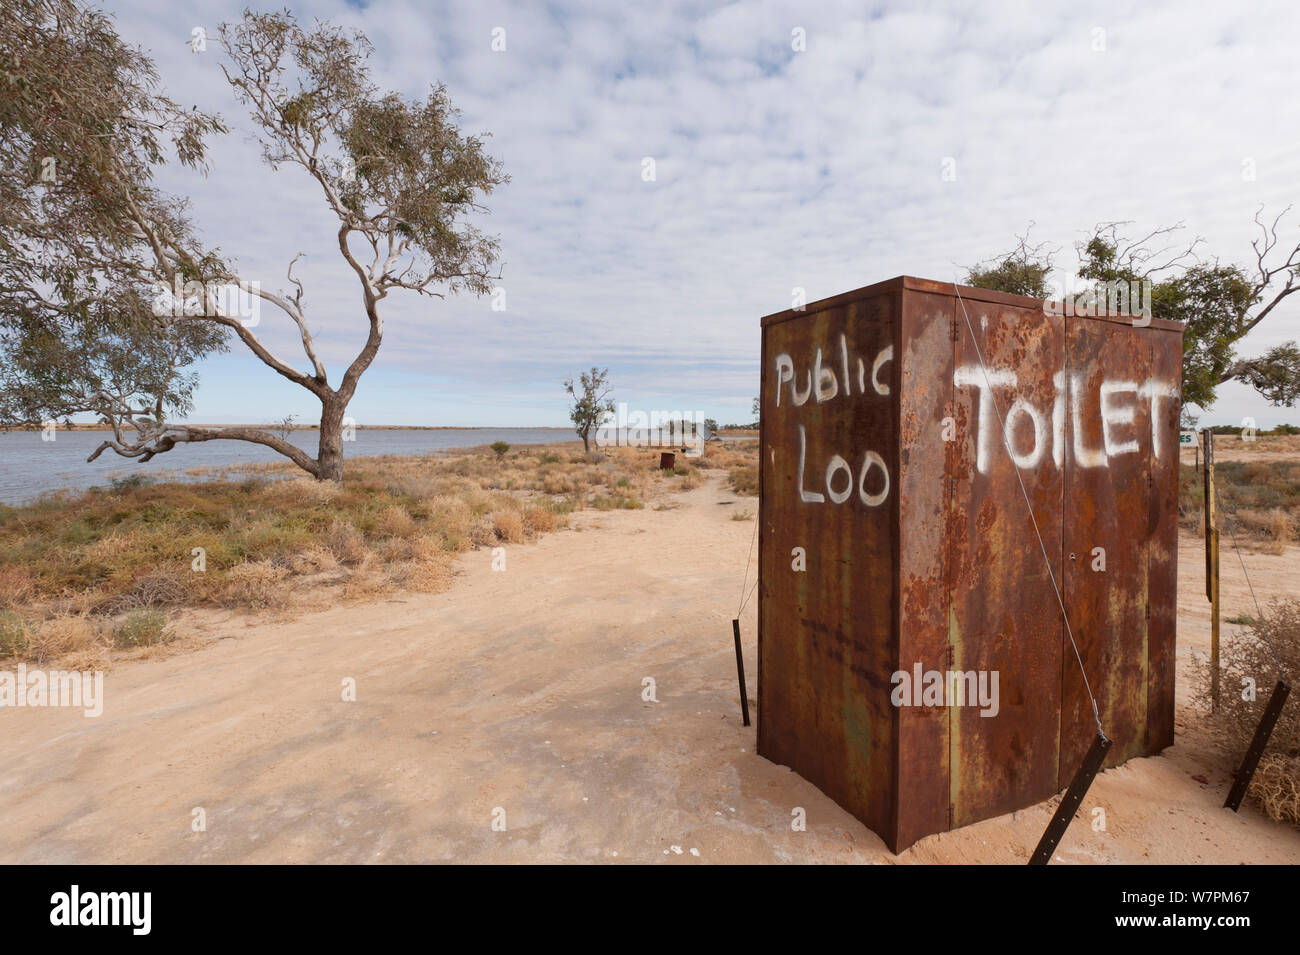 Public toilet in the outback by the punt along Cooper's Creek detour, South Australia, Australia Stock Photo